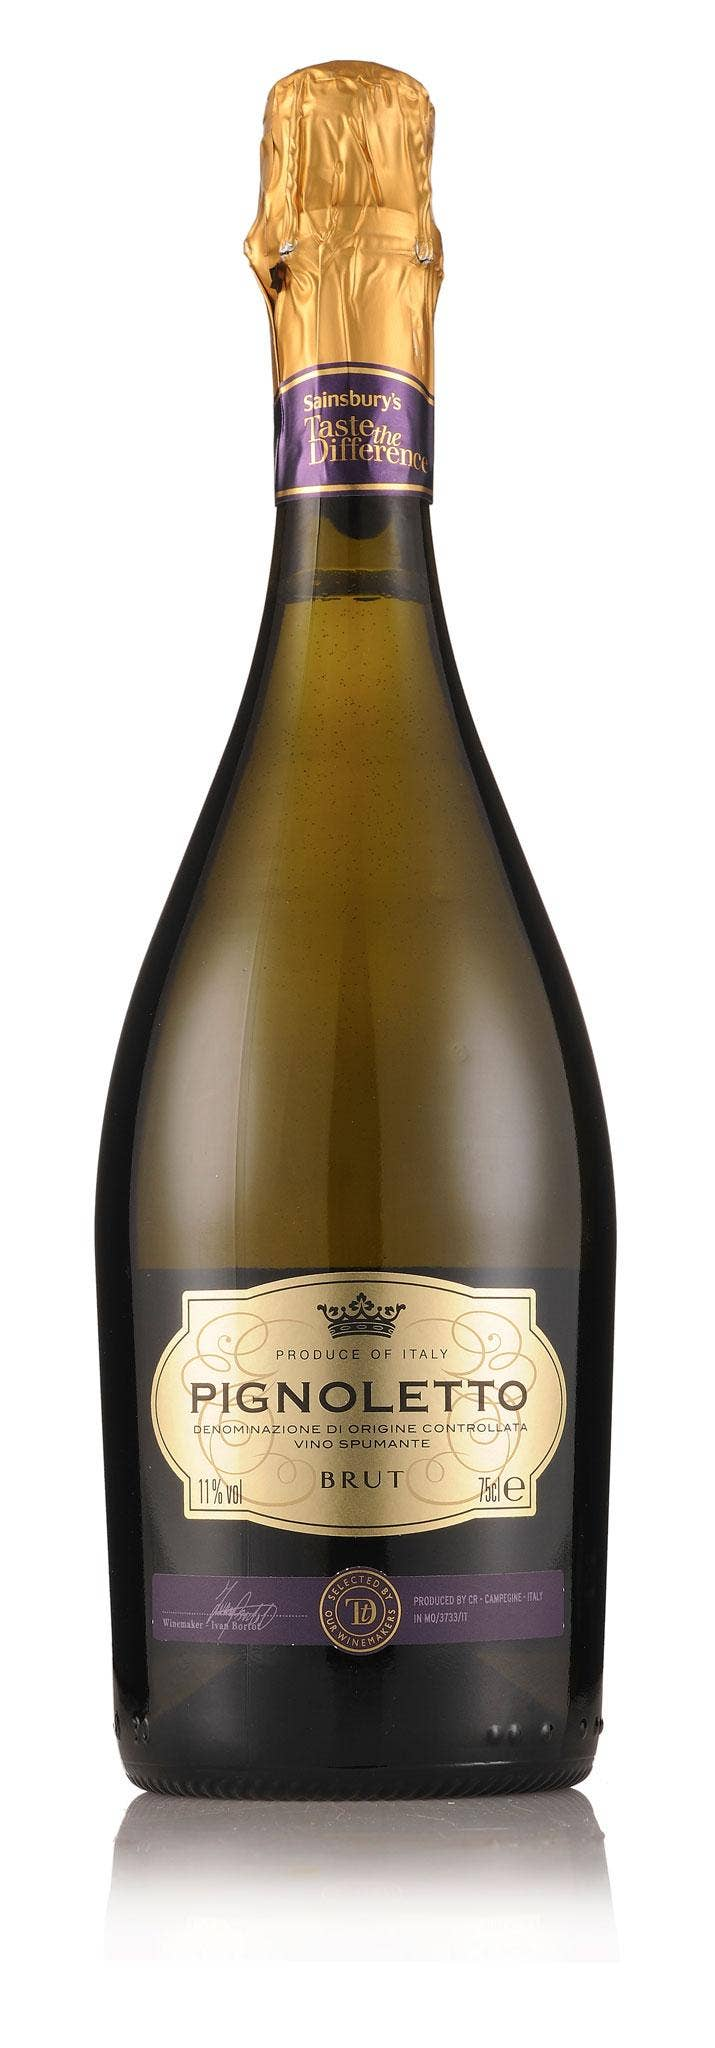 Pignoletto Brut Taste theDifference